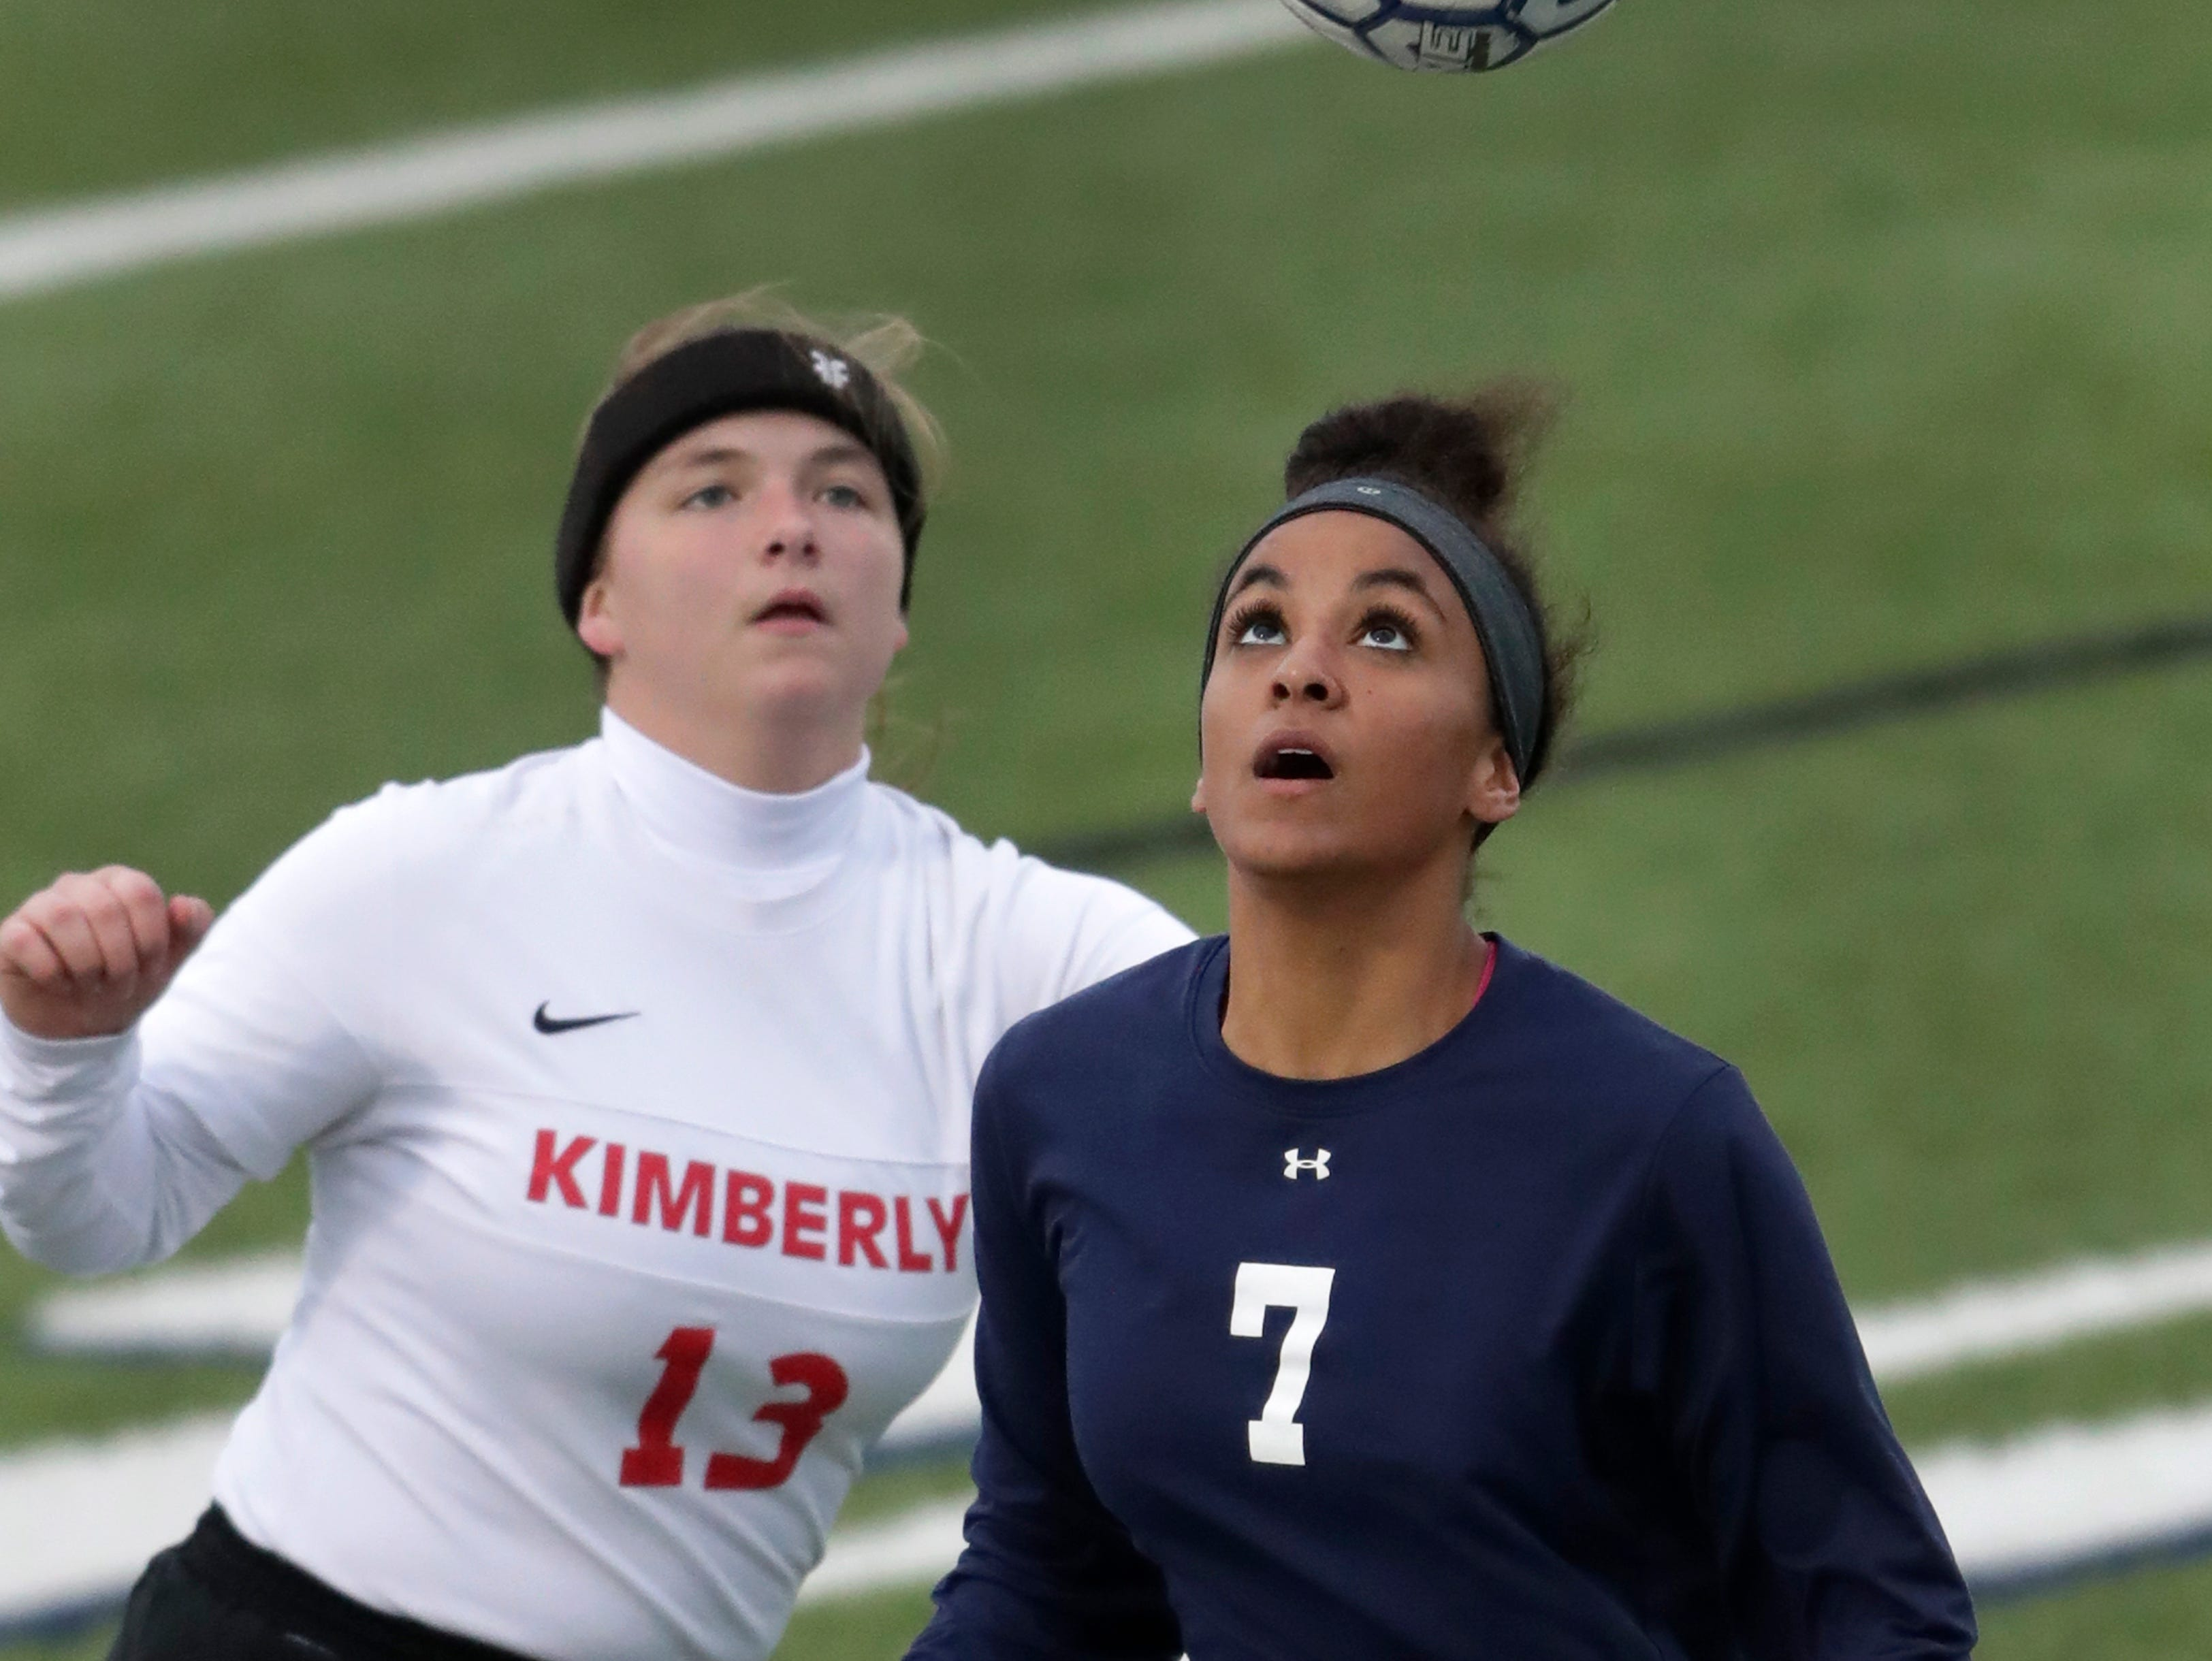 Appleton North High School's Izzie Ruzzicone (7) tries to control a throw in against Kimberly High School's Autumn Stage (13) during their girls soccer game Thursday, May 9, 2019, in Appleton, Wis. 